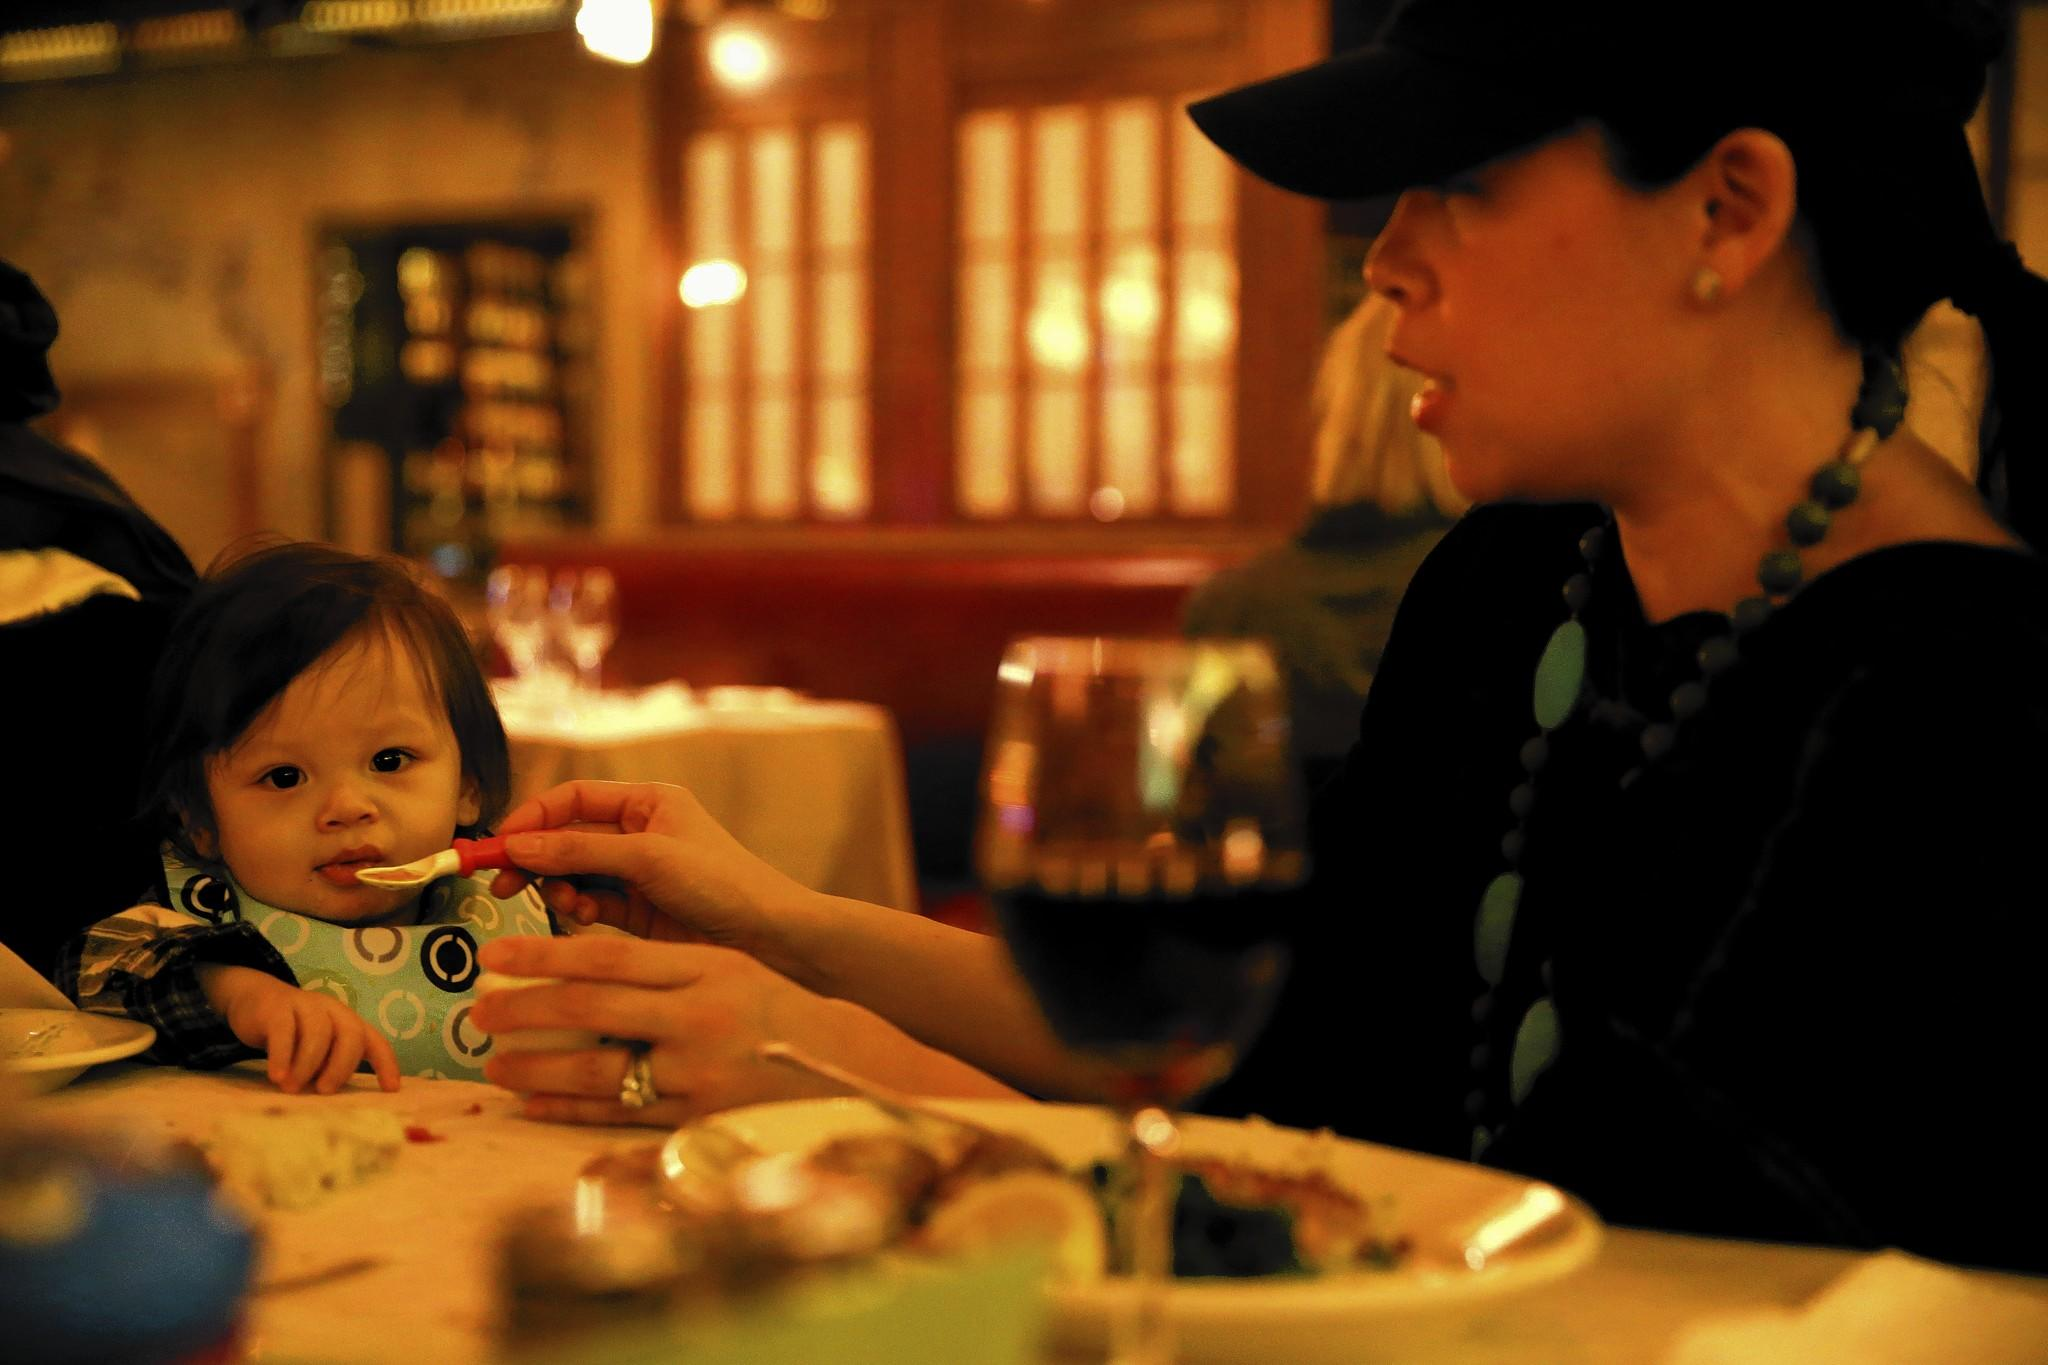 Kim Hartmann and her son, Liam, 14 months, dine at Scoozi in Chicago.